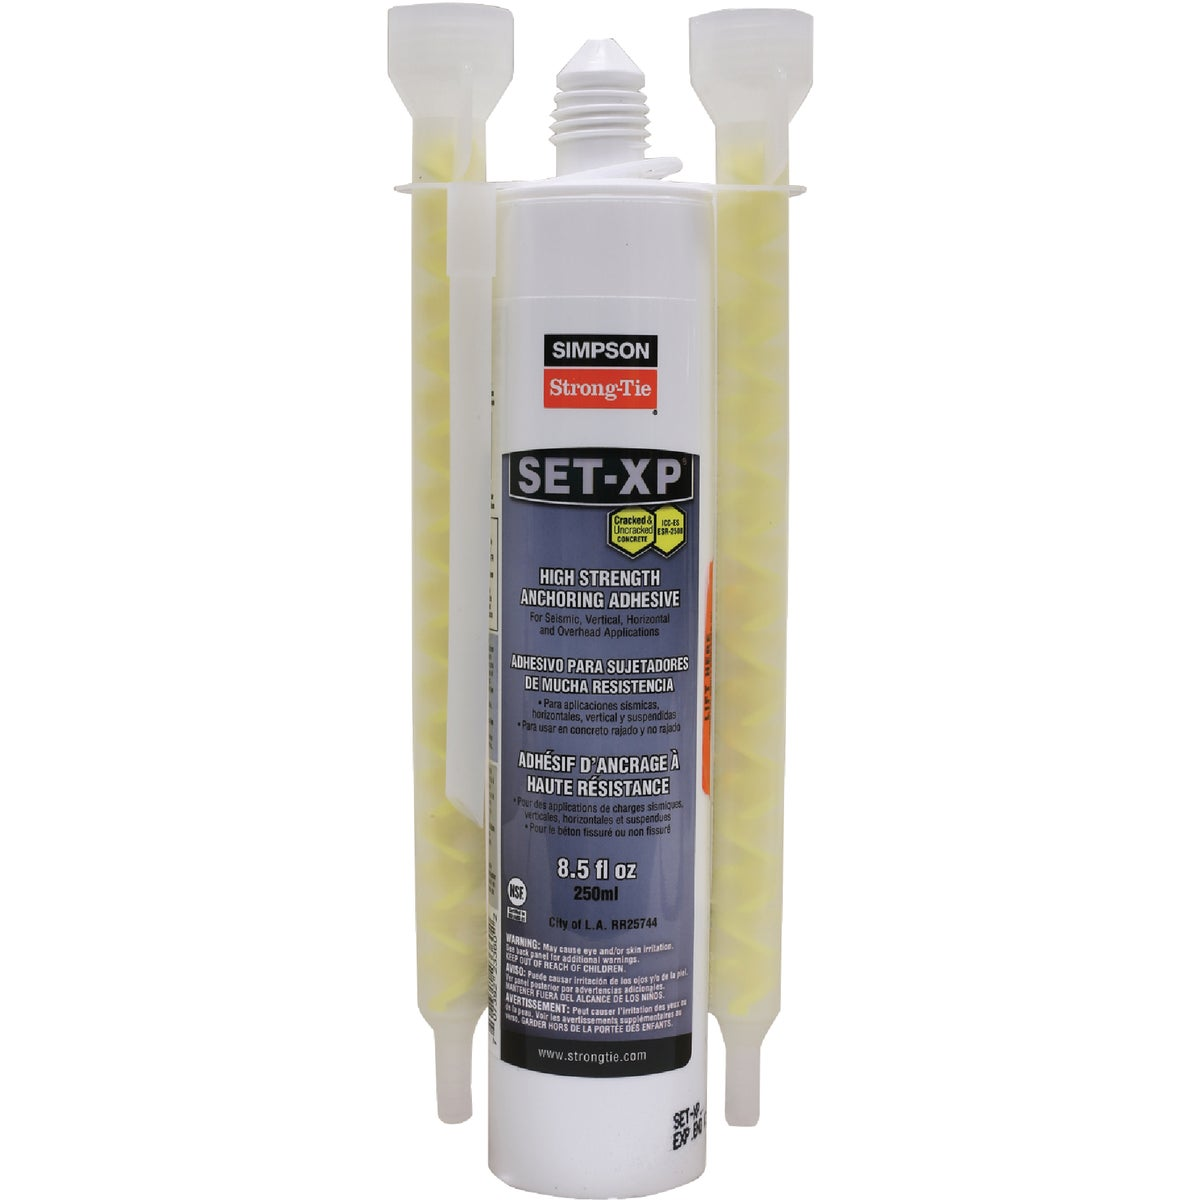 EPOXY-TIE ADHESIVE - SET-XP10 by Simpson Strong Tie